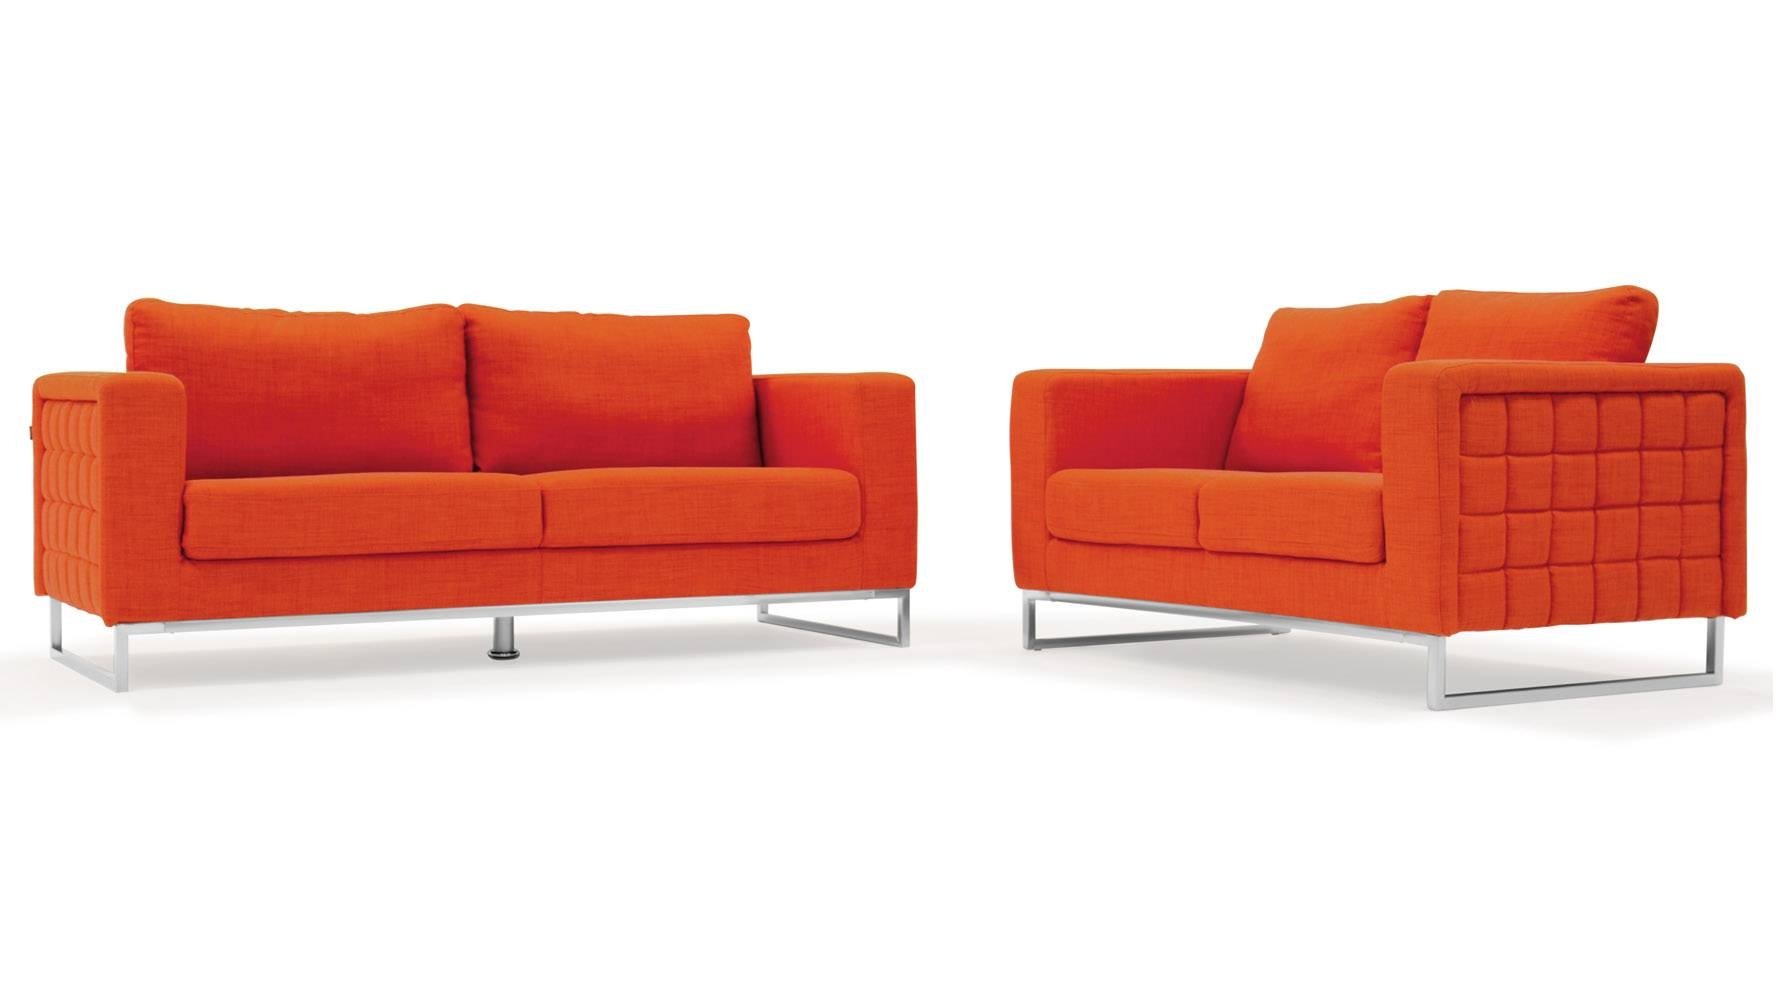 Modern Orange Fabric Upholstered 2 Piece Sofa Set With Stainless with Orange Modern Sofas (Image 12 of 15)